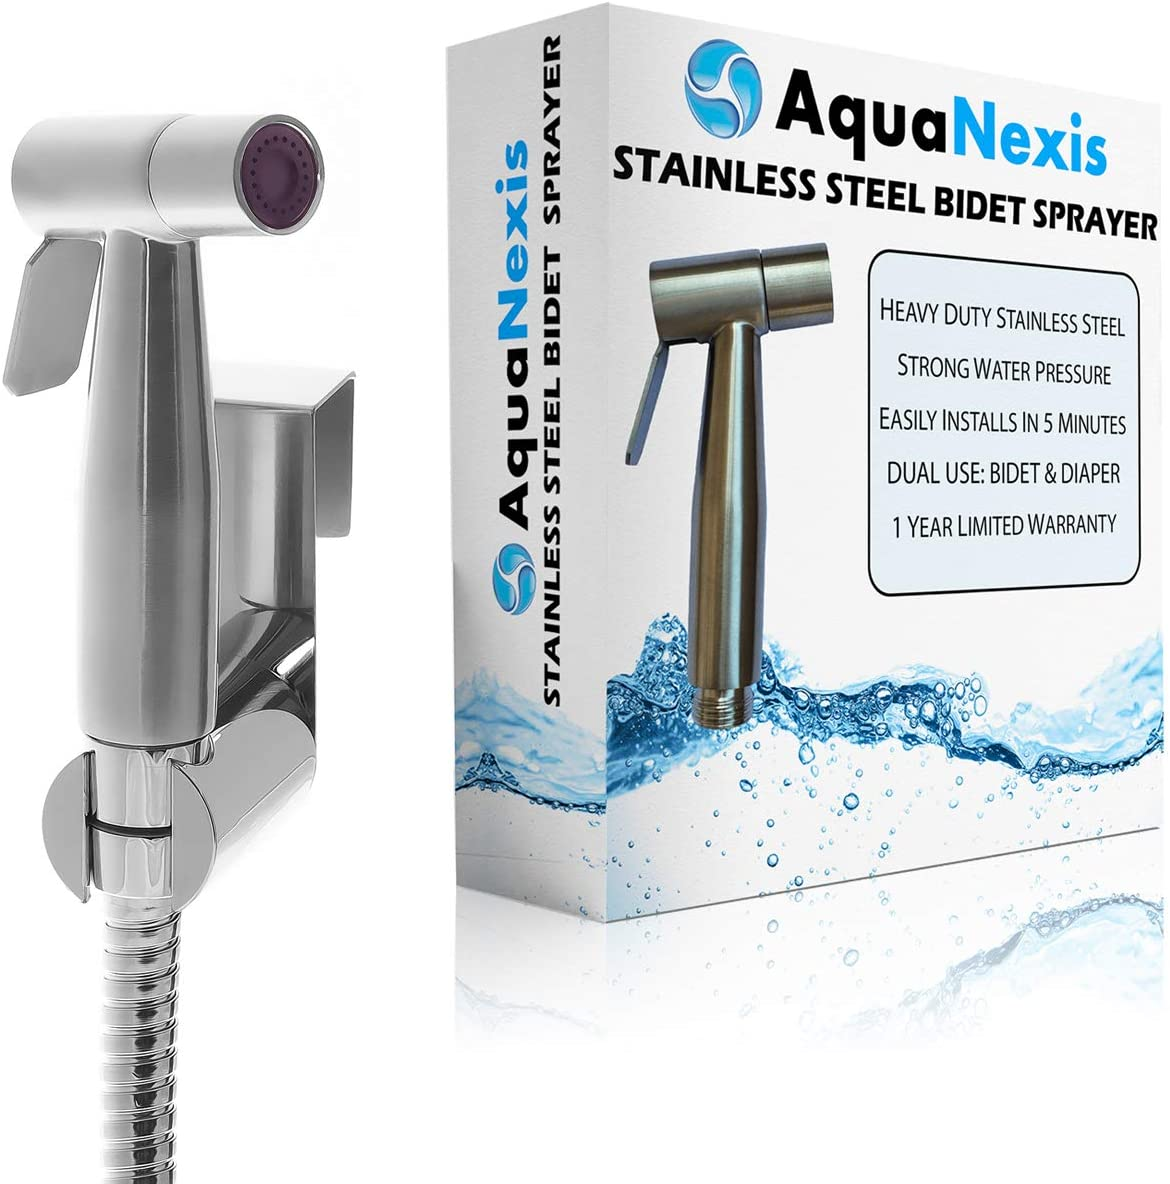 Aqua Nexis Premium Bidet Sprayer For Toilet Stainless Steel Bathroom Handheld Spray Best Used For Personal Hygiene And Potty Toilet Hygiene Perfect Bottom Cleaner Spray And Shower Attachment